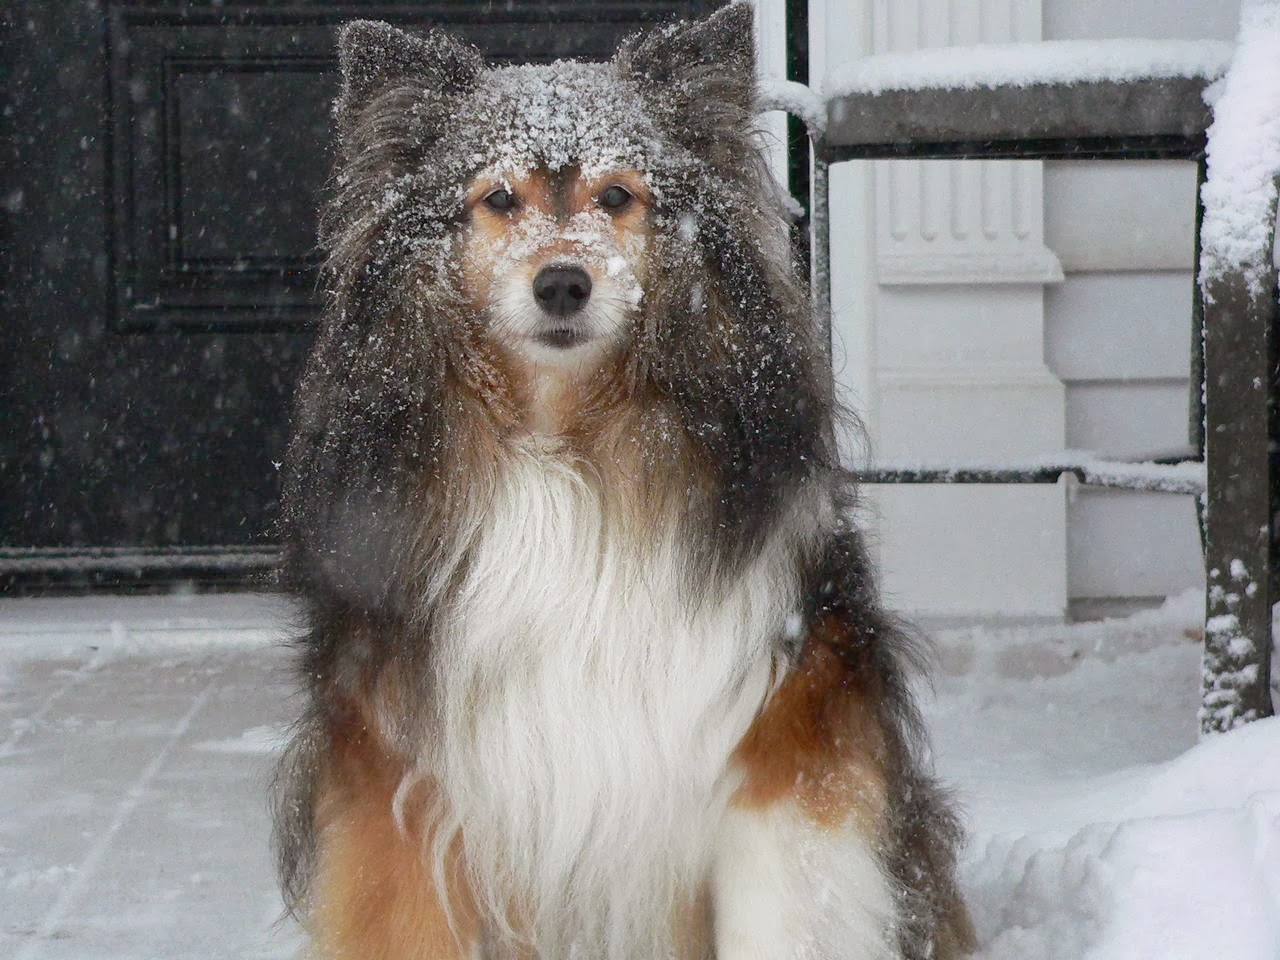 Cute dogs - part 9 (50 pics), dog on the snowy day